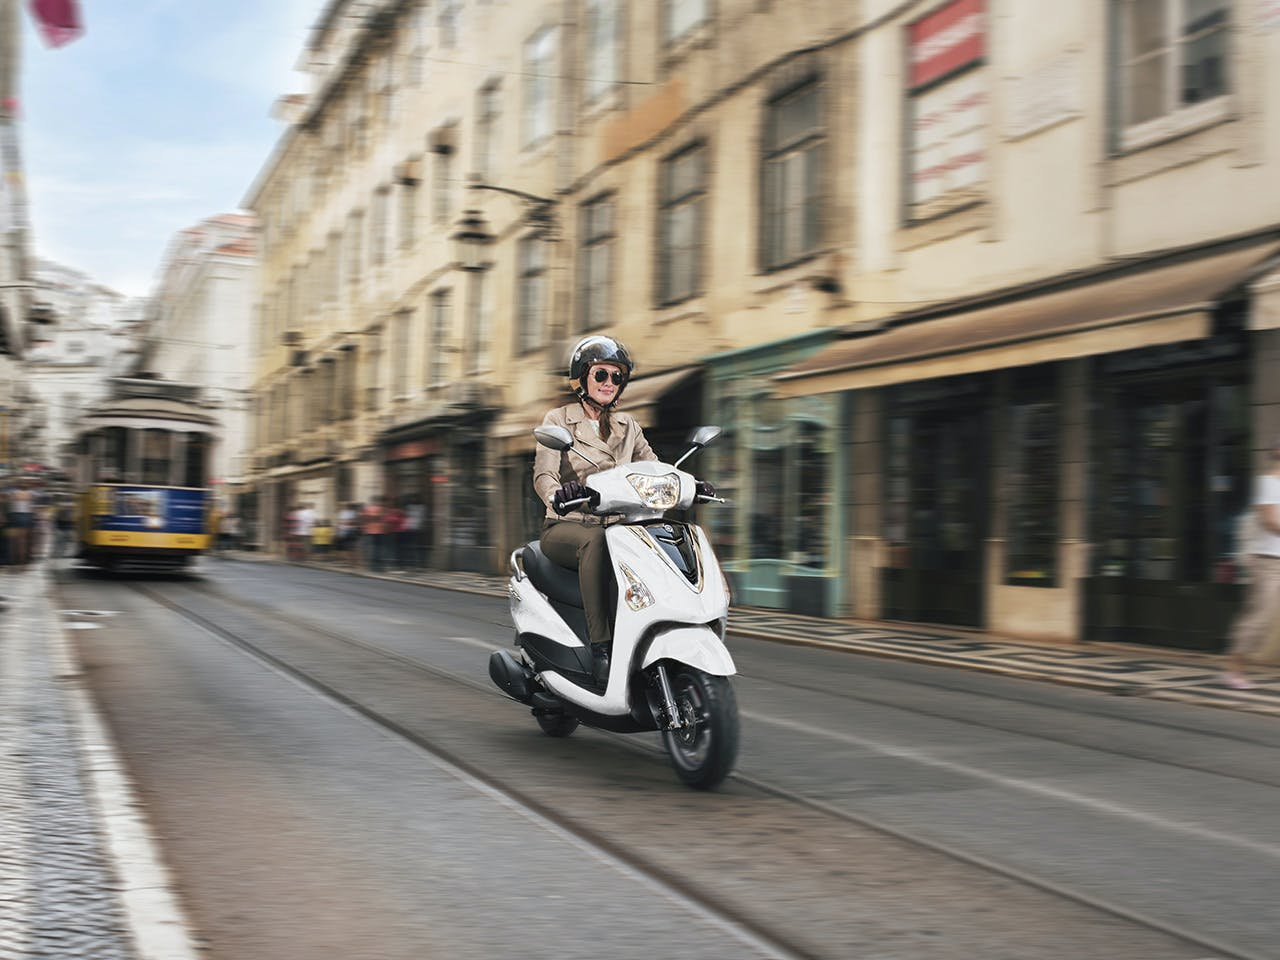 Yamaha D'elight 125 scooter in Milky White riding down city street